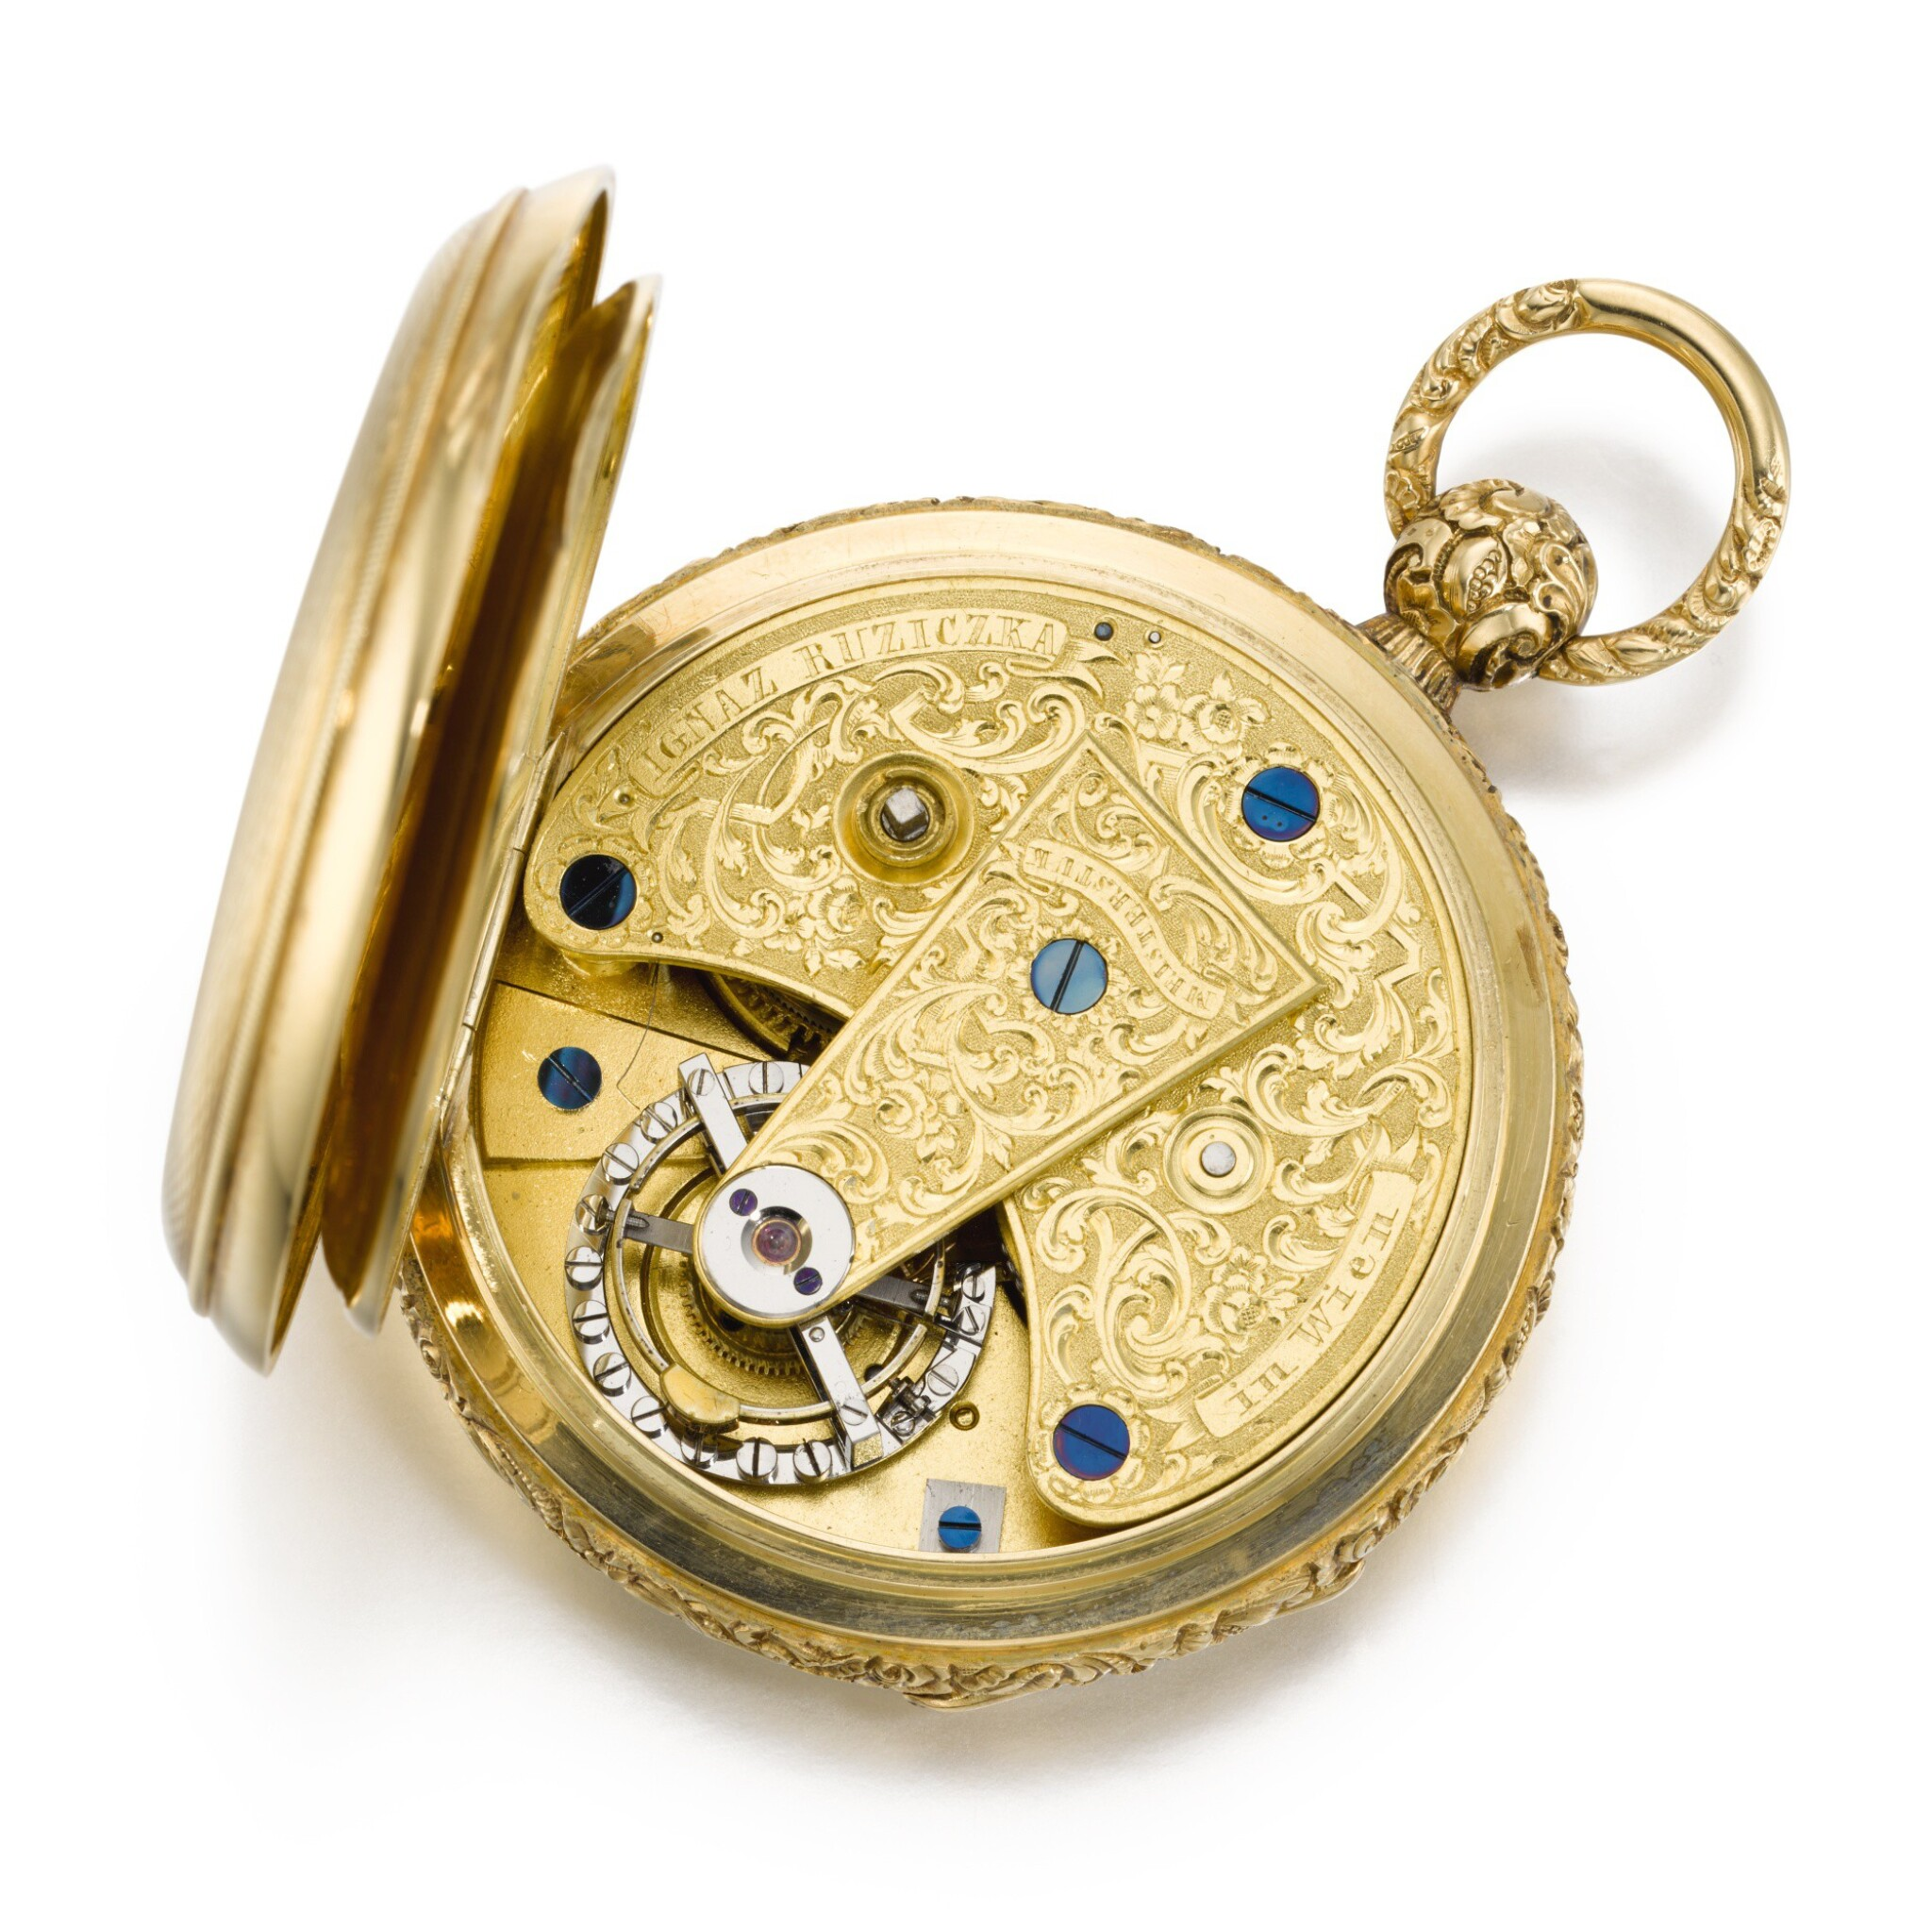 View full screen - View 1 of Lot 93. IGNAZ RUZICZKA, IN WIEN [Ignaz Ruziczka,維也納] | A VERY FINE AND RARE GOLD OPEN-FACED ONE-MINUTE TOURBILLON WATCH WITH CHRONOMETER ESCAPEMENT AND RÉAUMUR THERMOMETER  CIRCA 1840 [極罕有黃金一分鐘陀飛輪懷錶備天文鐘擒縱系統及列氏溫度計,年份約1840].